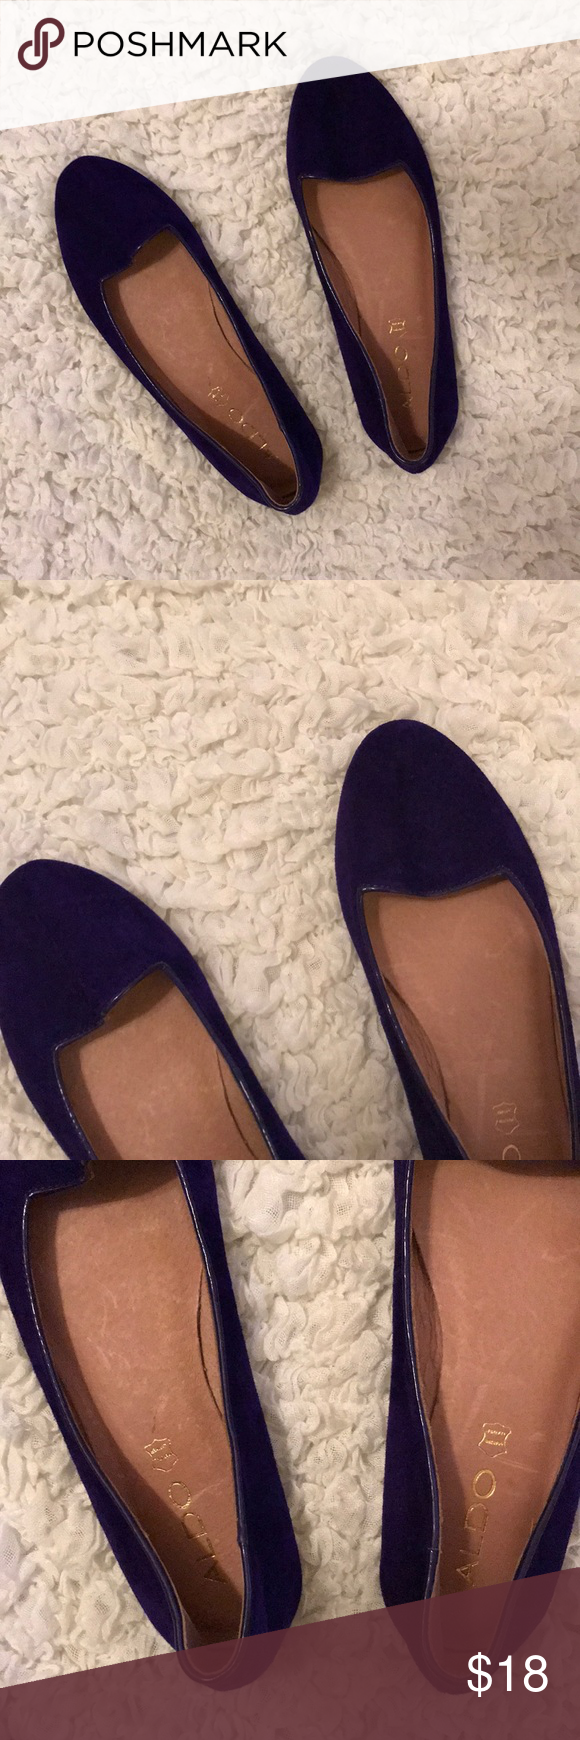 a3bfd204d05 ALDO Dark Purple Loafers  NEVER WORN  Dark Purple Never Worn Aldo Loafers.  Size 38 (7.5) Aldo Shoes Flats   Loafers